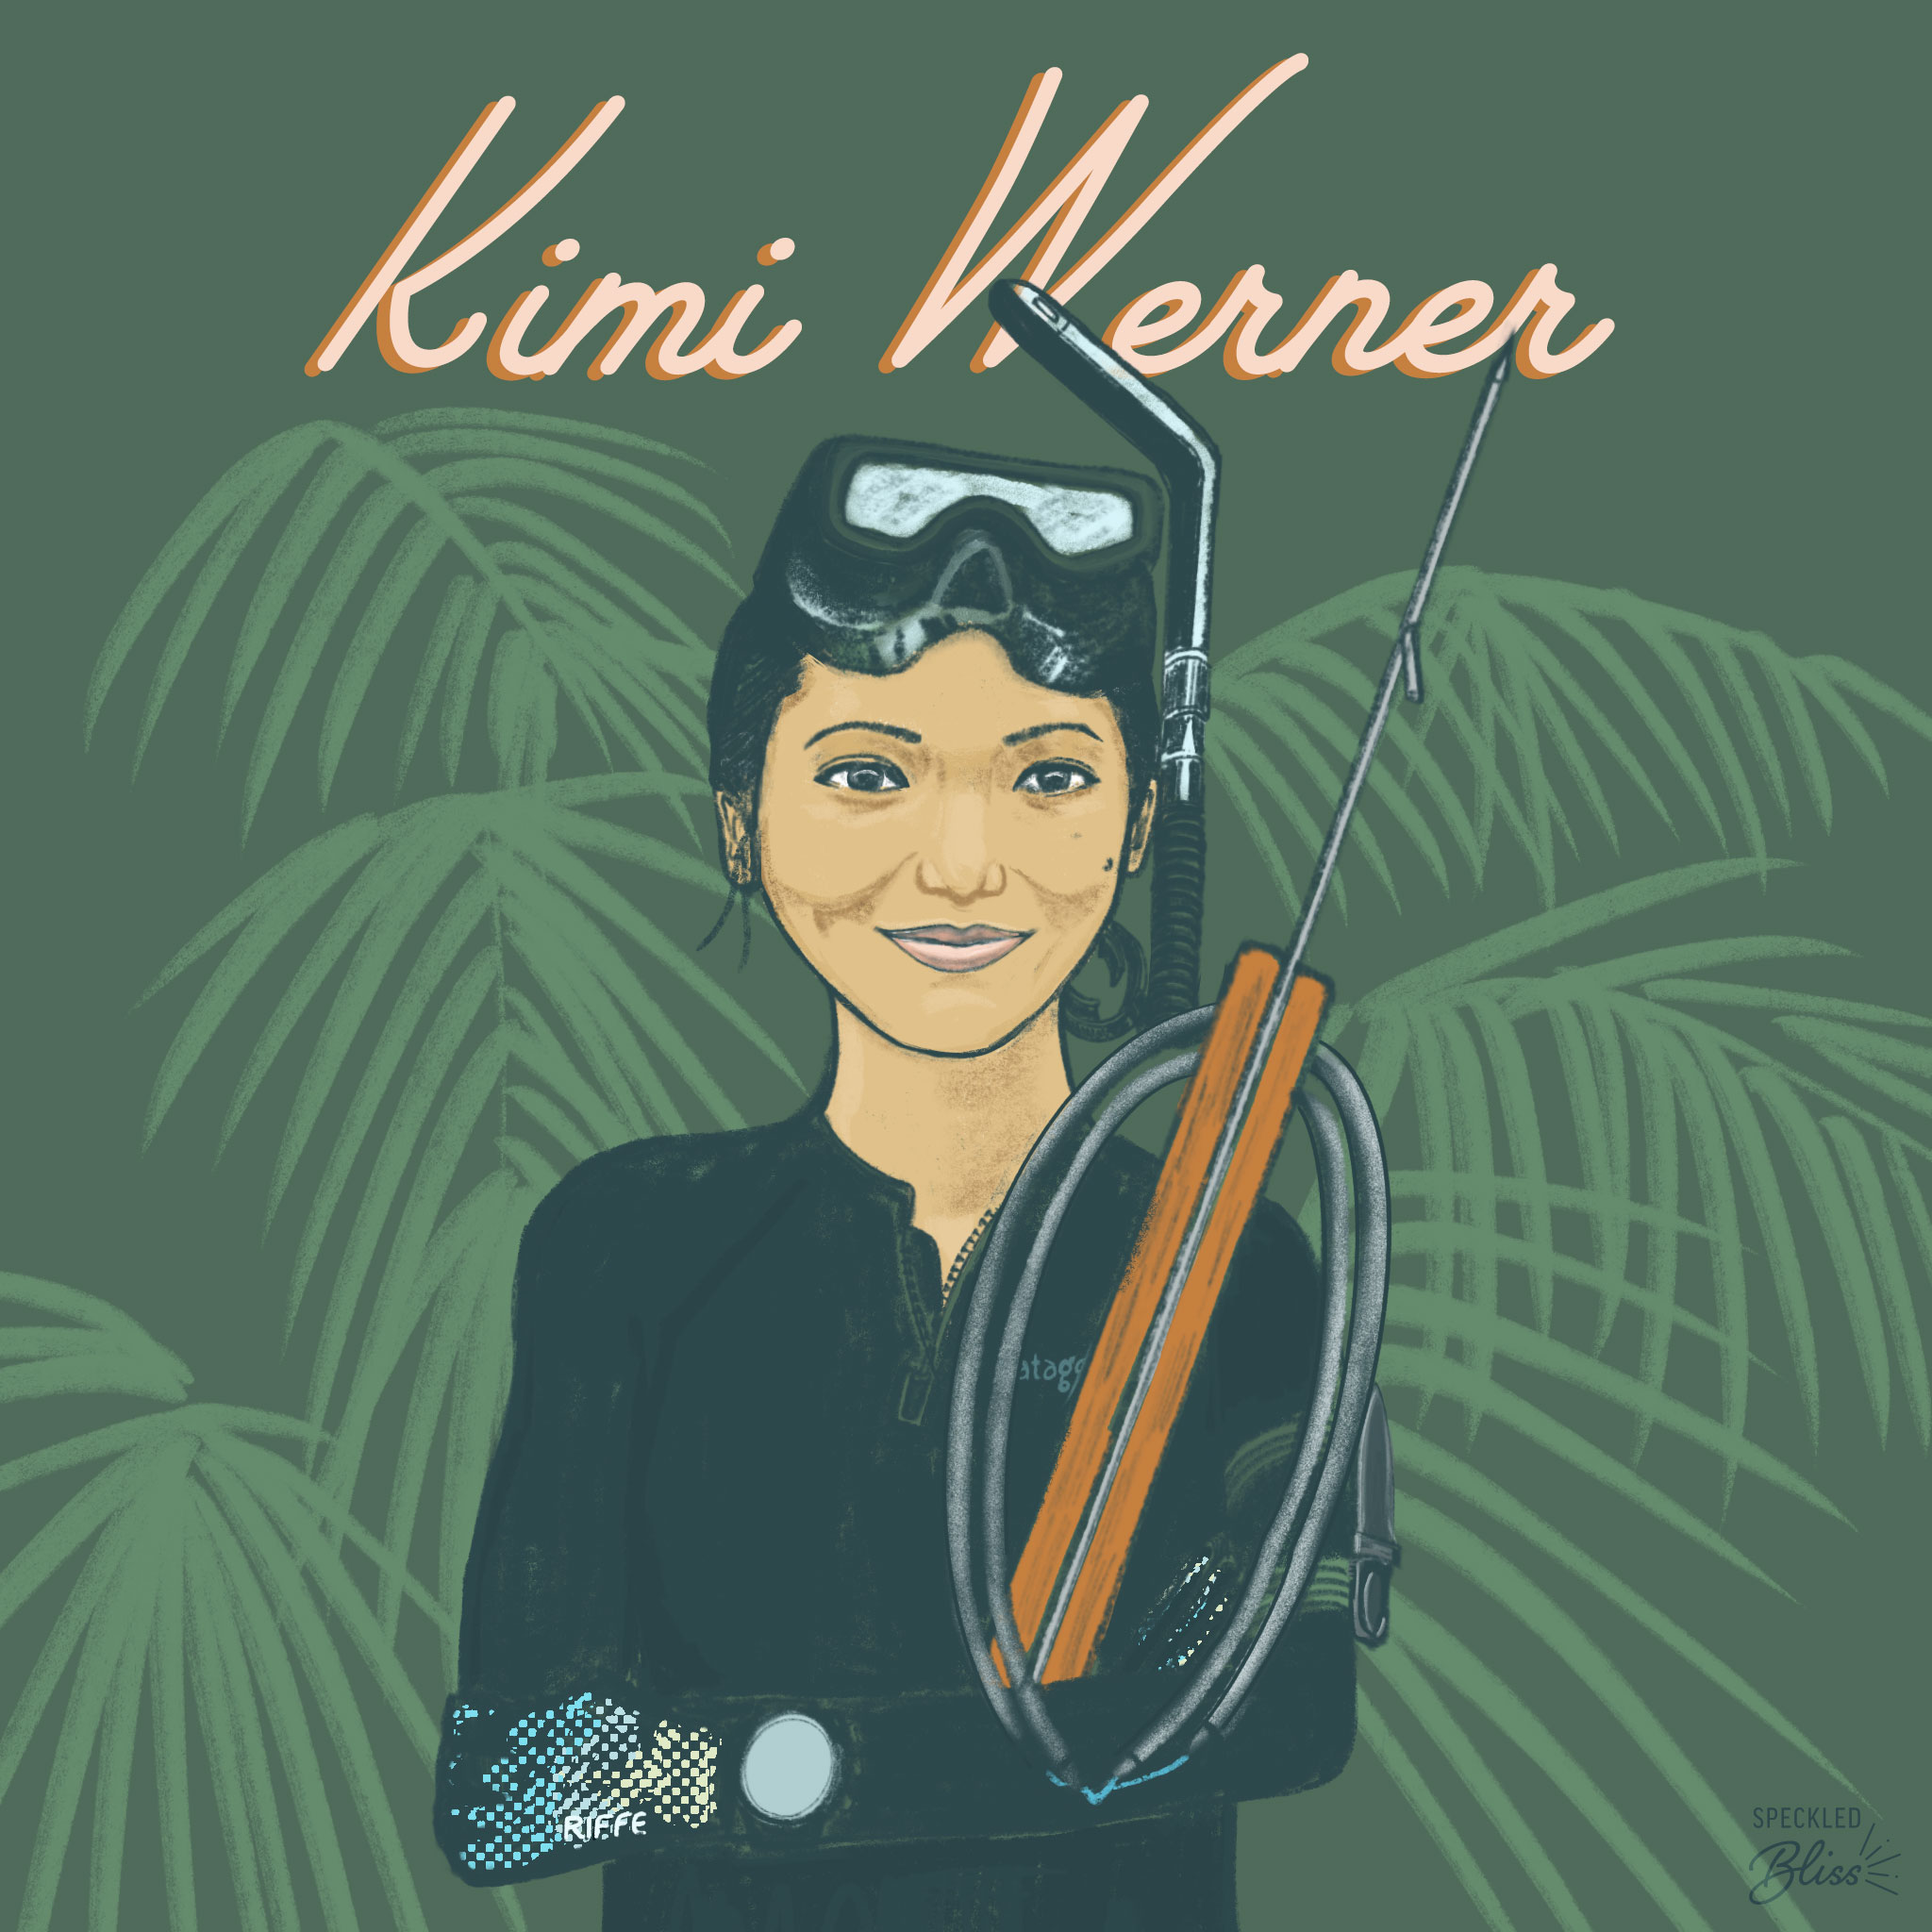 Meet Kimi Werner. US National Spearfishing Champion, Certified Culinary Chef, Award Winning Artist.   Kimi grew up off the grid in coastal Maui watching her father freedive for her family's primary food source. As she became an adult, she discovered her own passion for freediving.  What I admire about Kimi is that she takes her talent--with one breath, one drop, & one shot to get one fish--to provide sustenance for her family & community. She is a prime example of someone living a fulfilled life by regularly facing fears. With a deep appreciation for the ocean, she is geared up to help build a healthy future for our global community.  You can learn more about her story on  @Patagonia 's FISHPEOPLE documentary on  @Netflix  where they dive into six people whose lives were transformed by the sea.  Follow Kimi and her magical underwater adventures  @kimi_swimmy